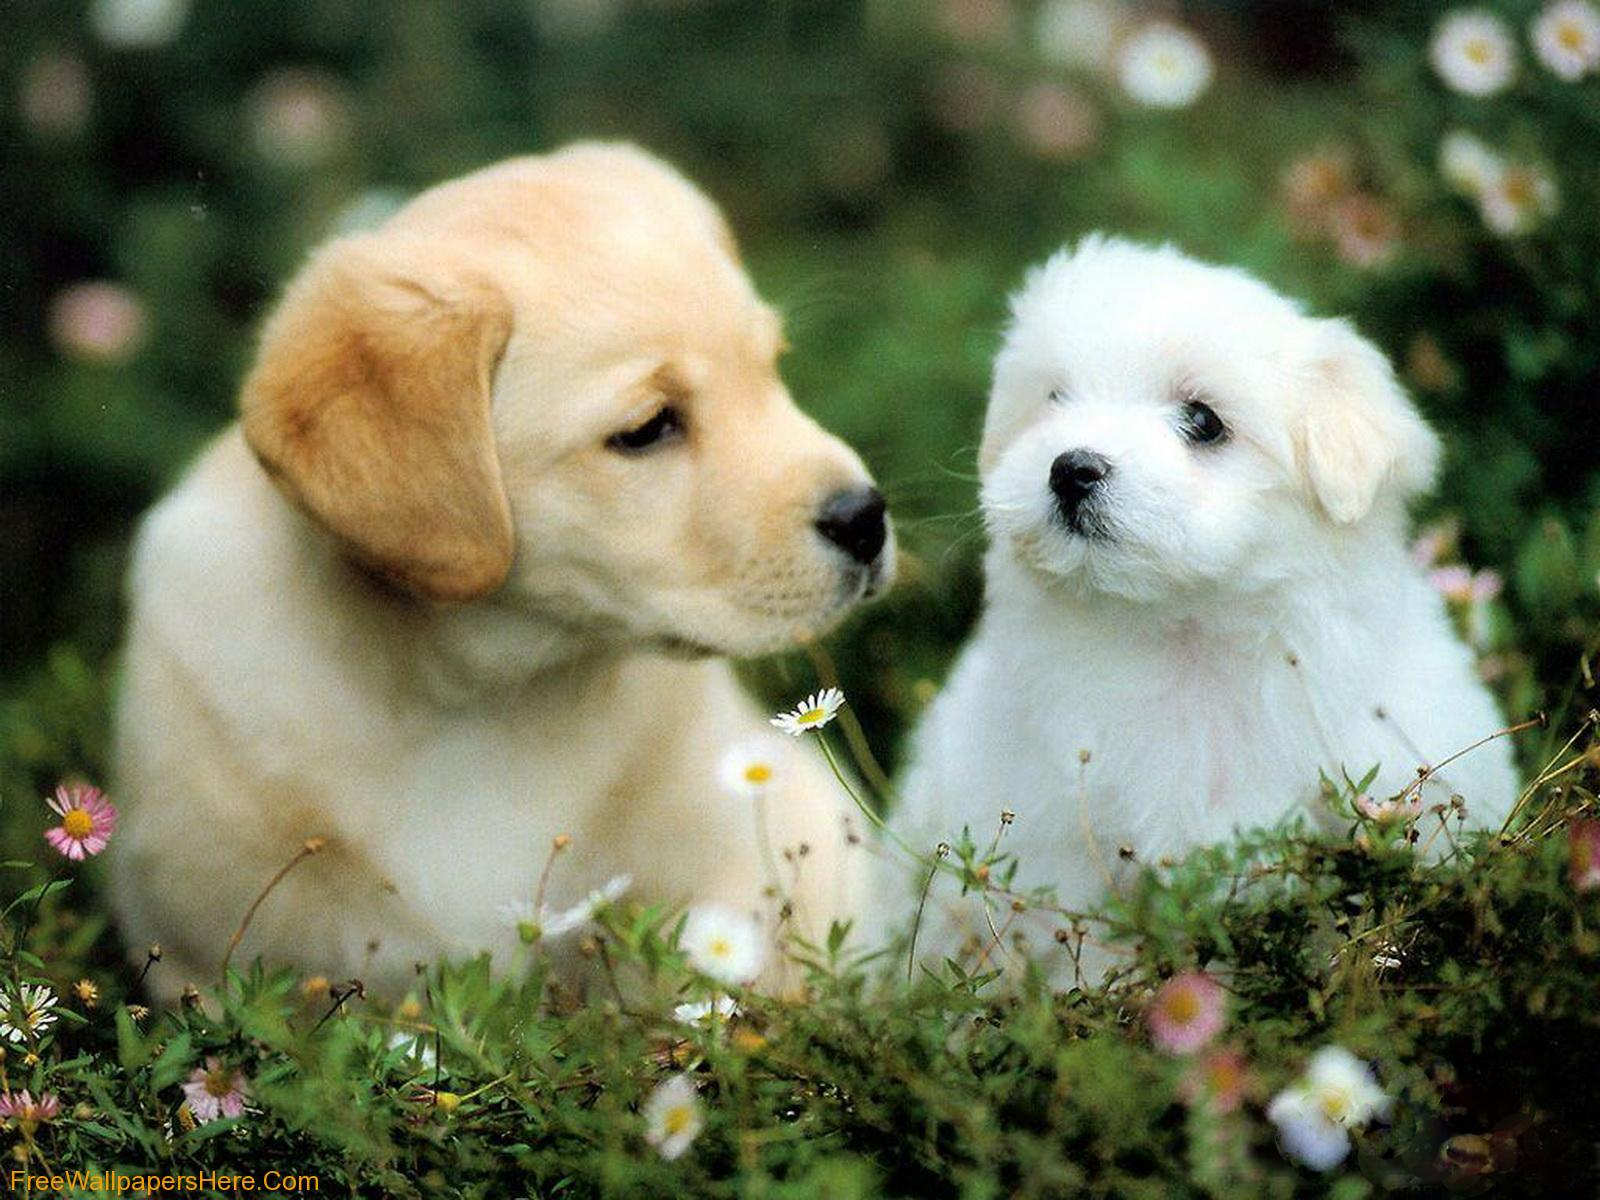 puppies wallpaper christmas puppies wallpaper cute dogs and puppies 1600x1200